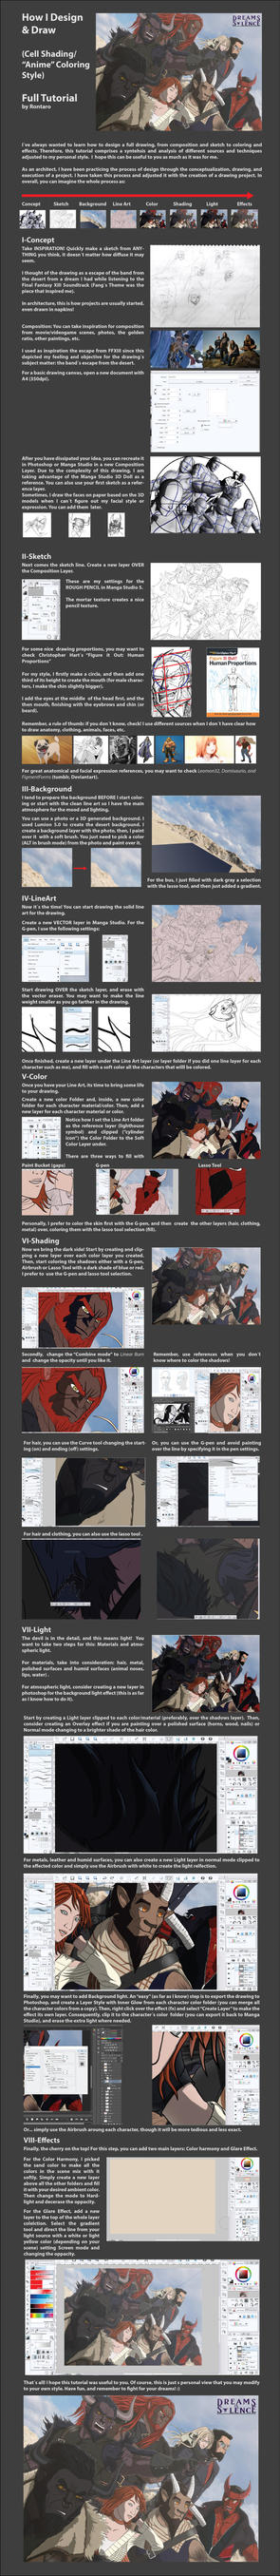 How I Design and Draw: Cell Shading/Anime Tutorial by dodark